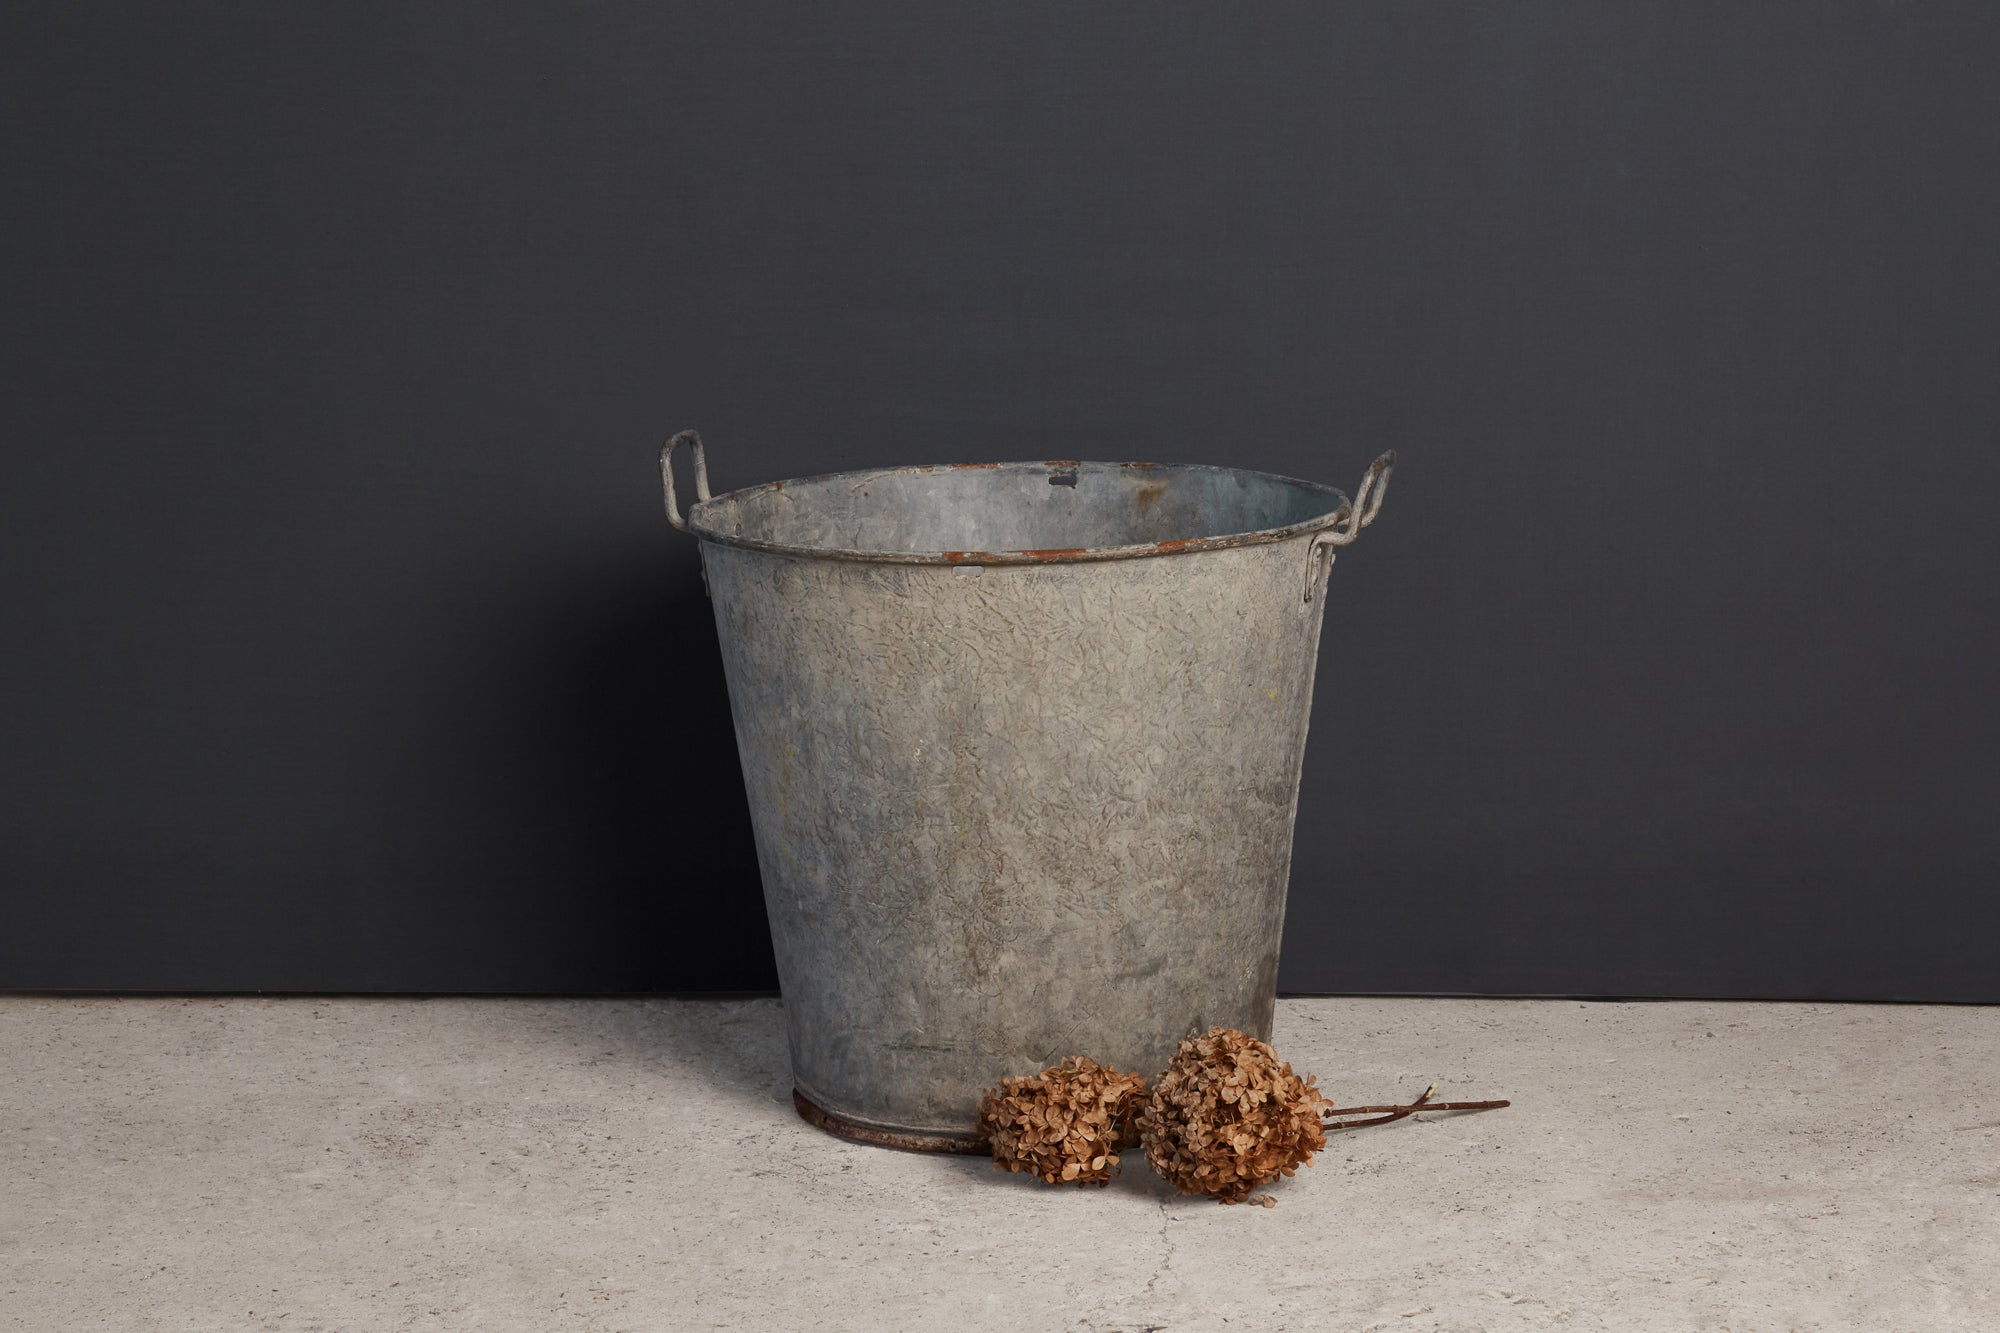 19th Century German Zinc Farm Bucket